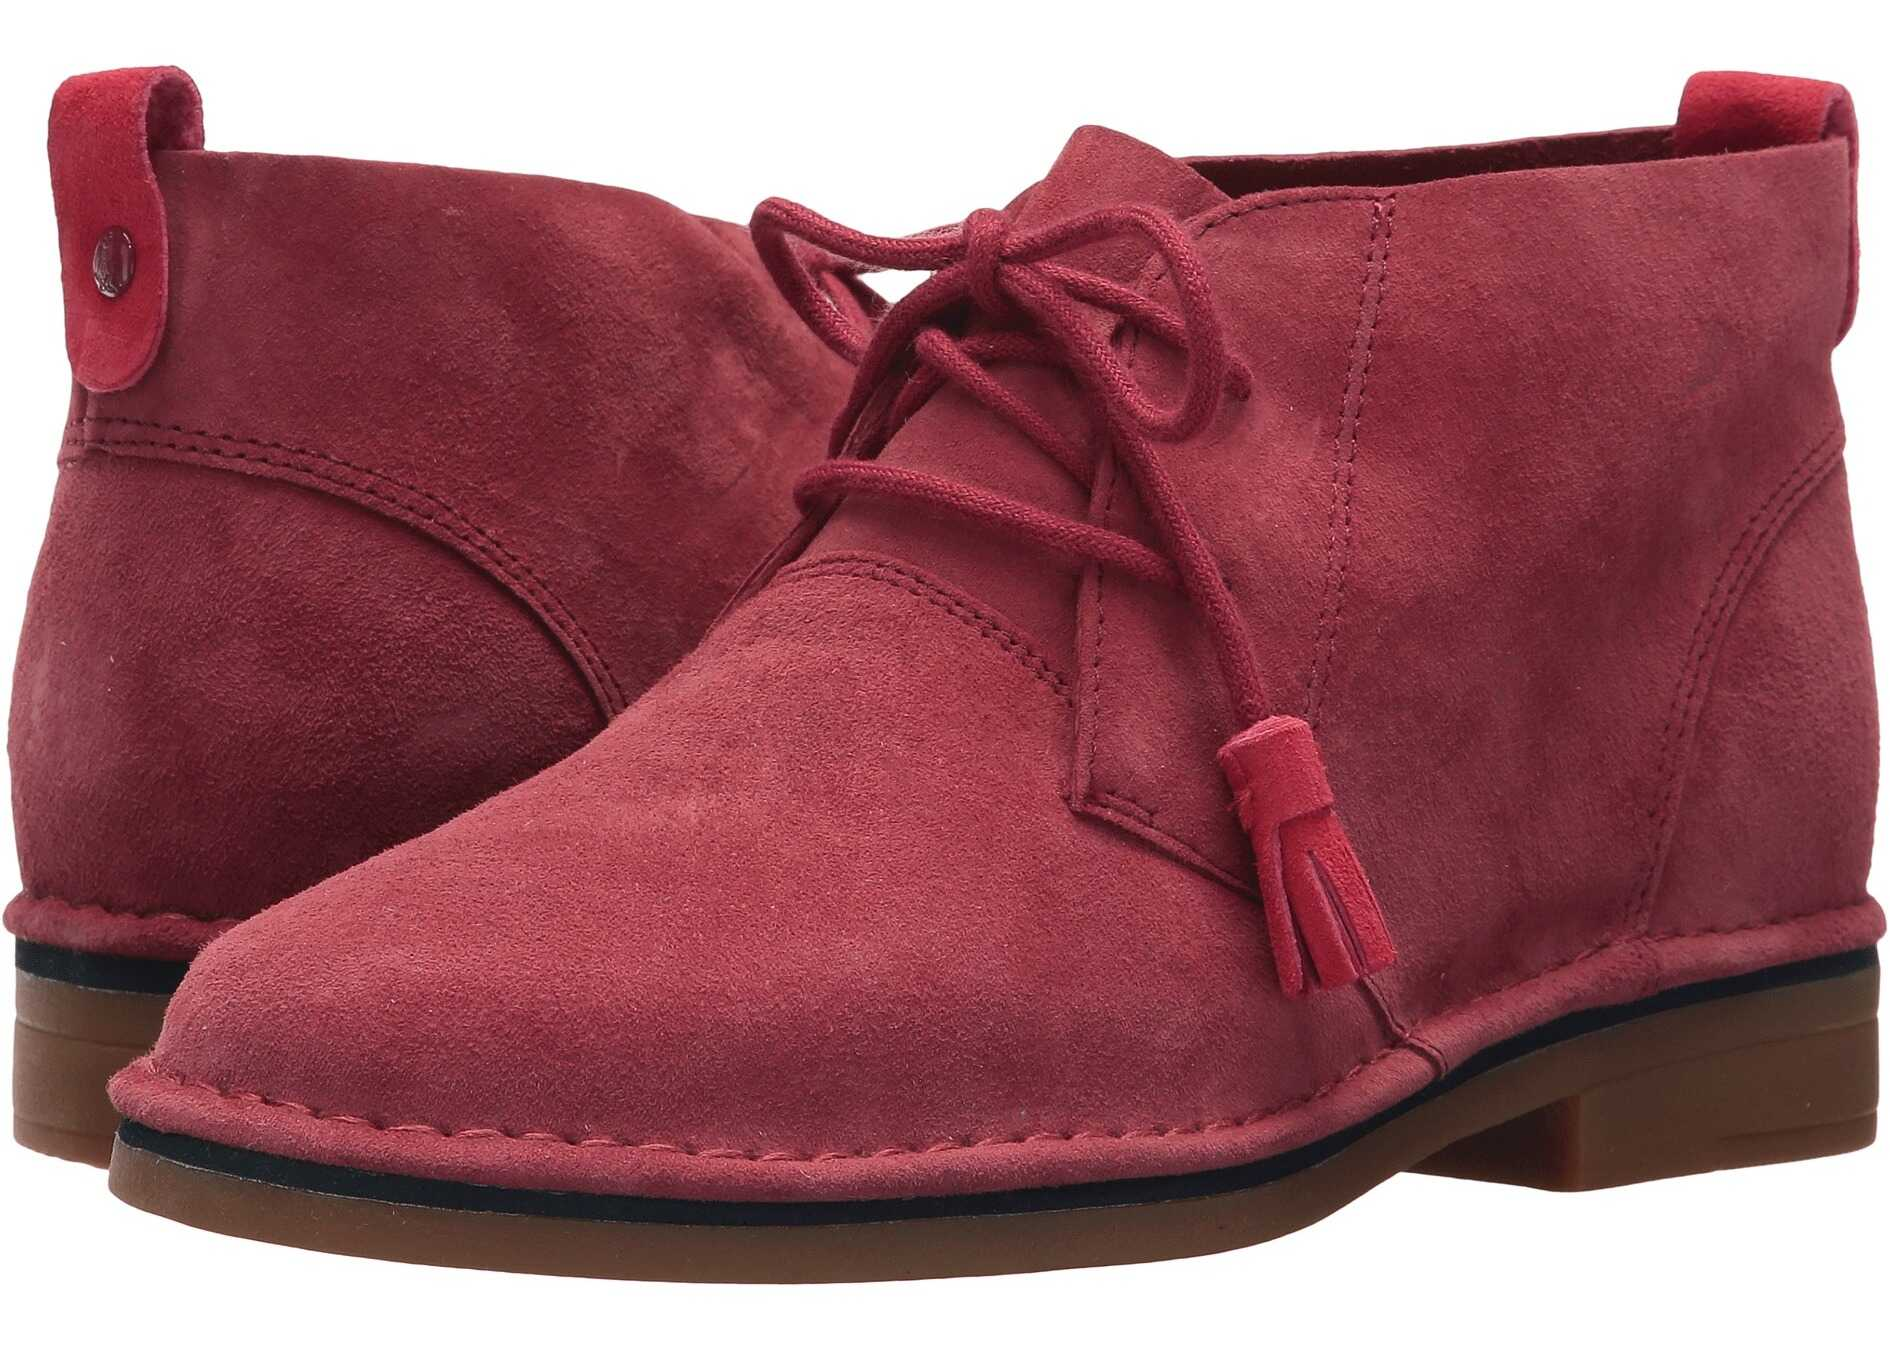 Hush Puppies Cyra Catelyn Dark Red Suede 1